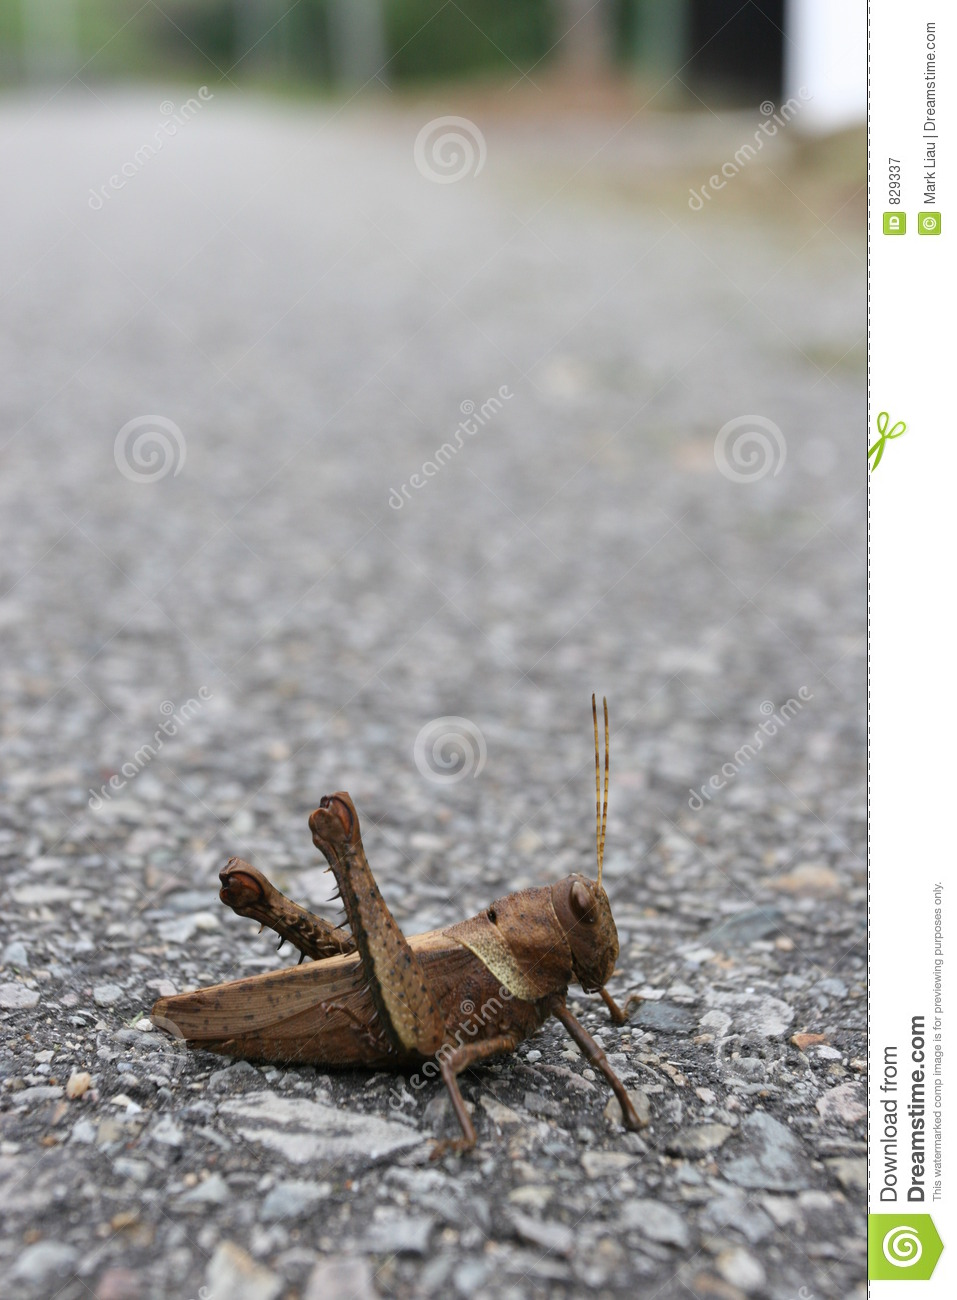 Why did the Cricket cross the road